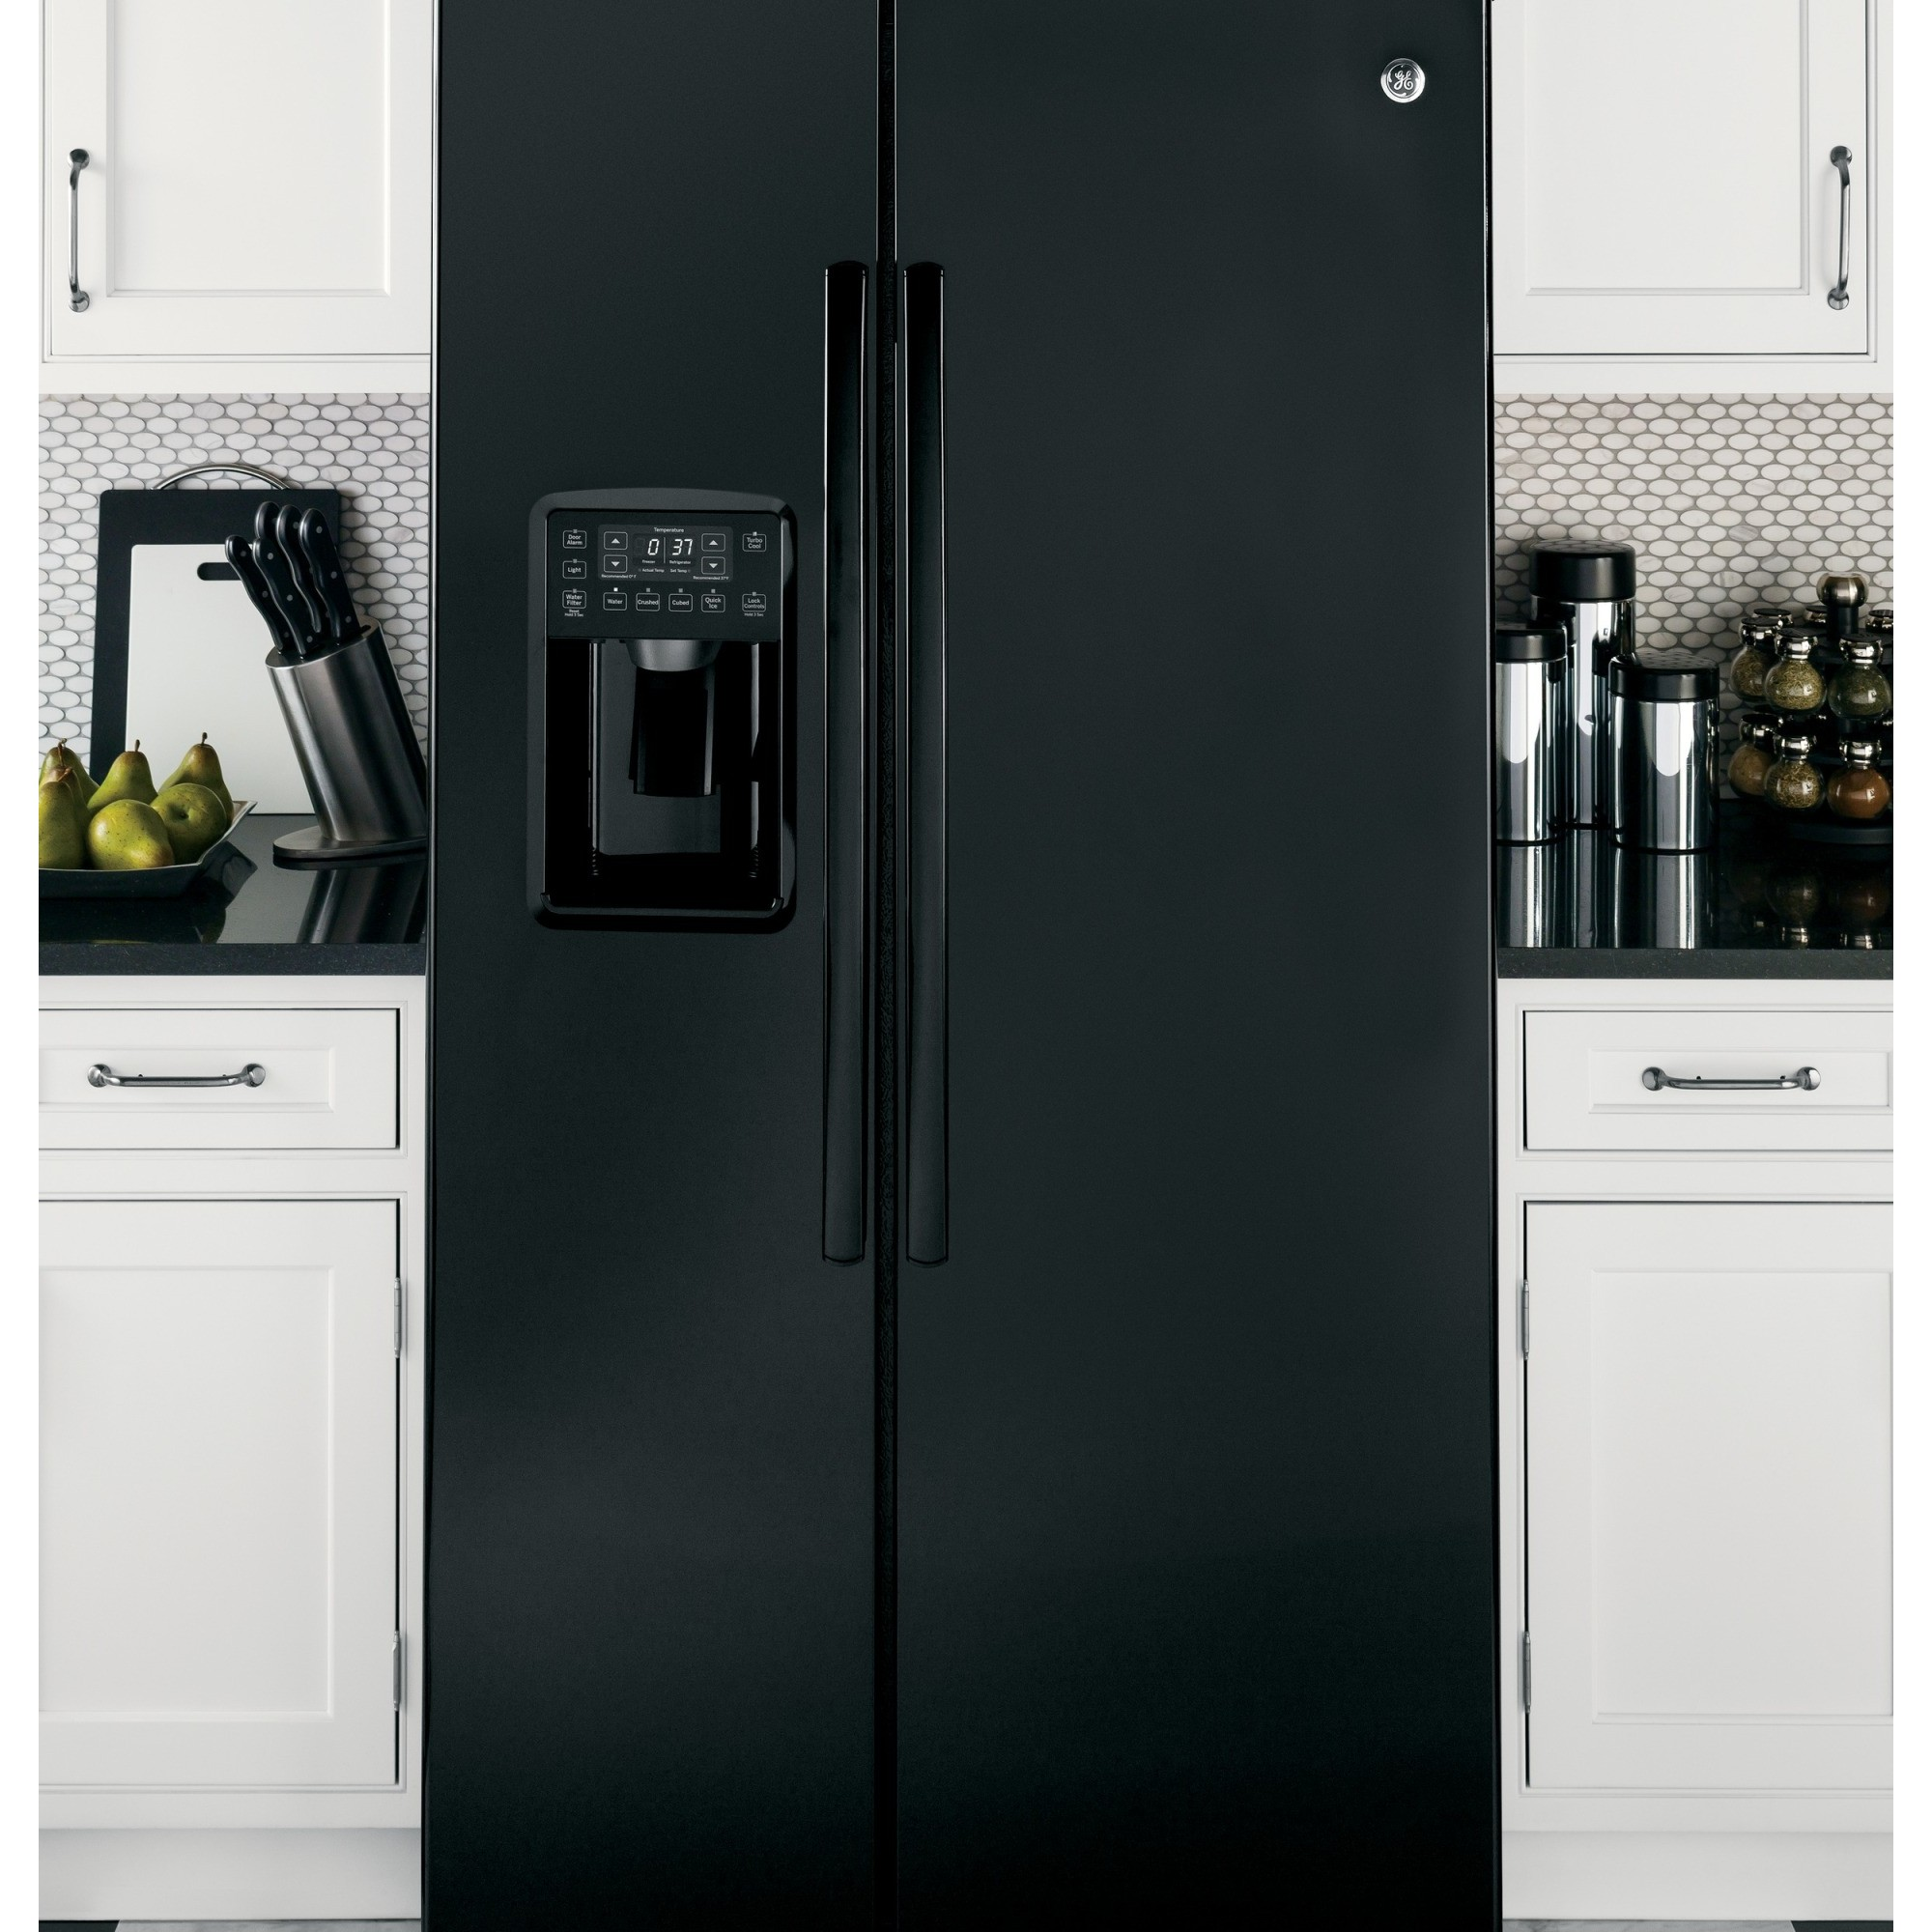 wolf kitchen ranges looking for used cabinets pse25kghbb | ge profile series 25.4 cu. ft. side-by-side ...